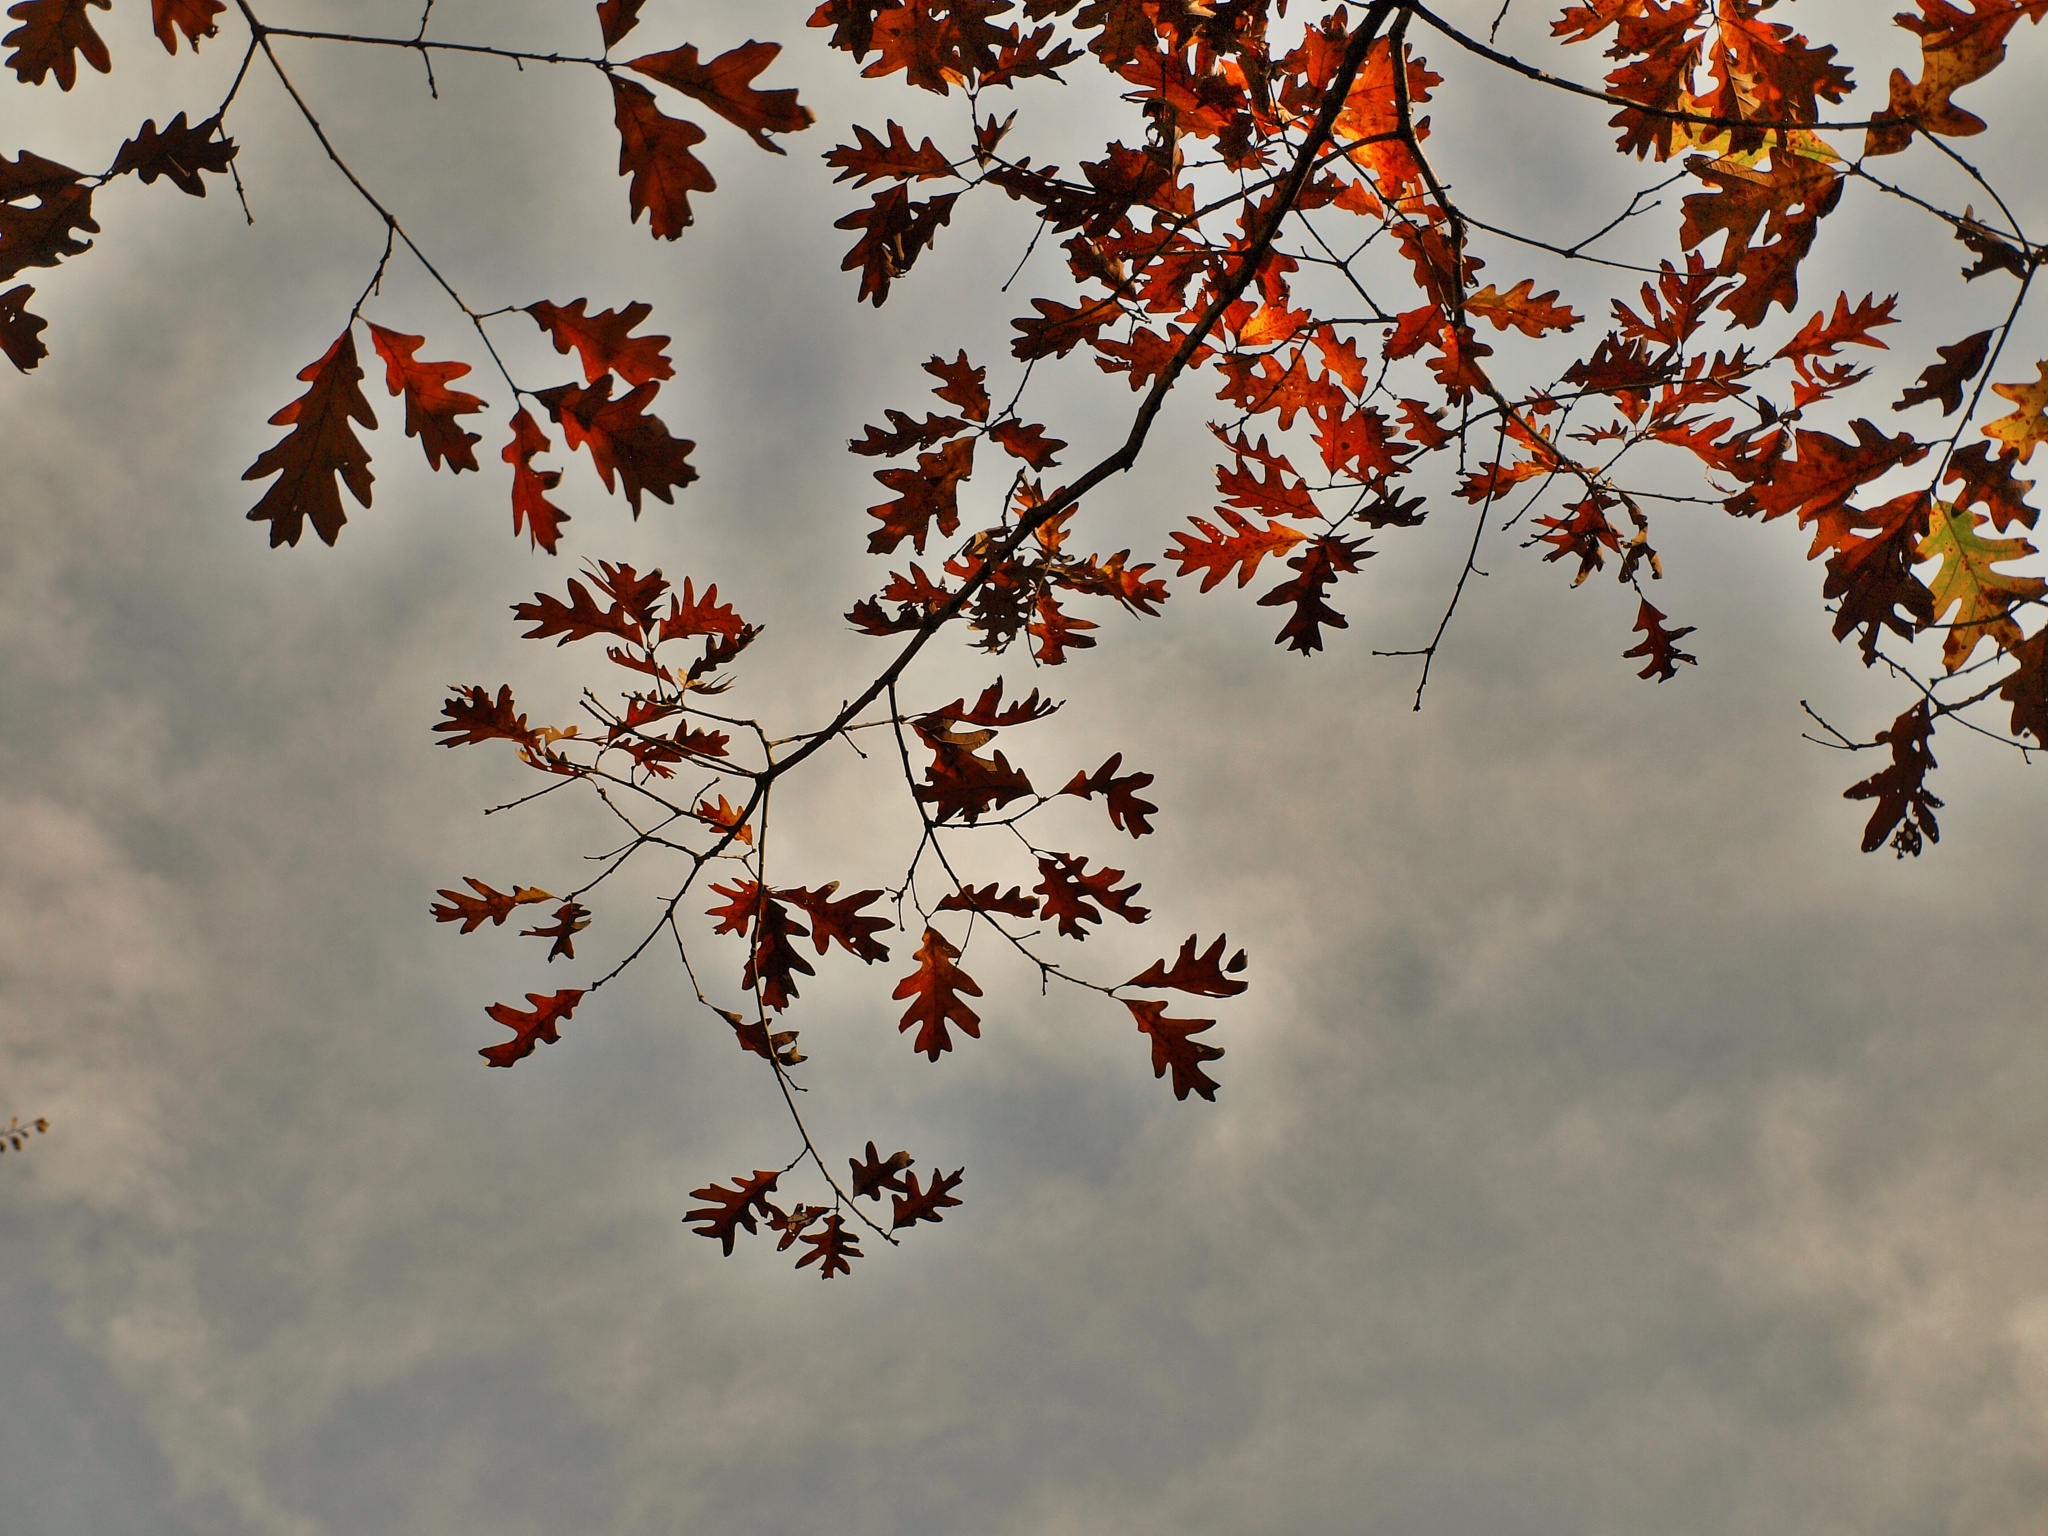 Autumn Sky by photofly/Holly